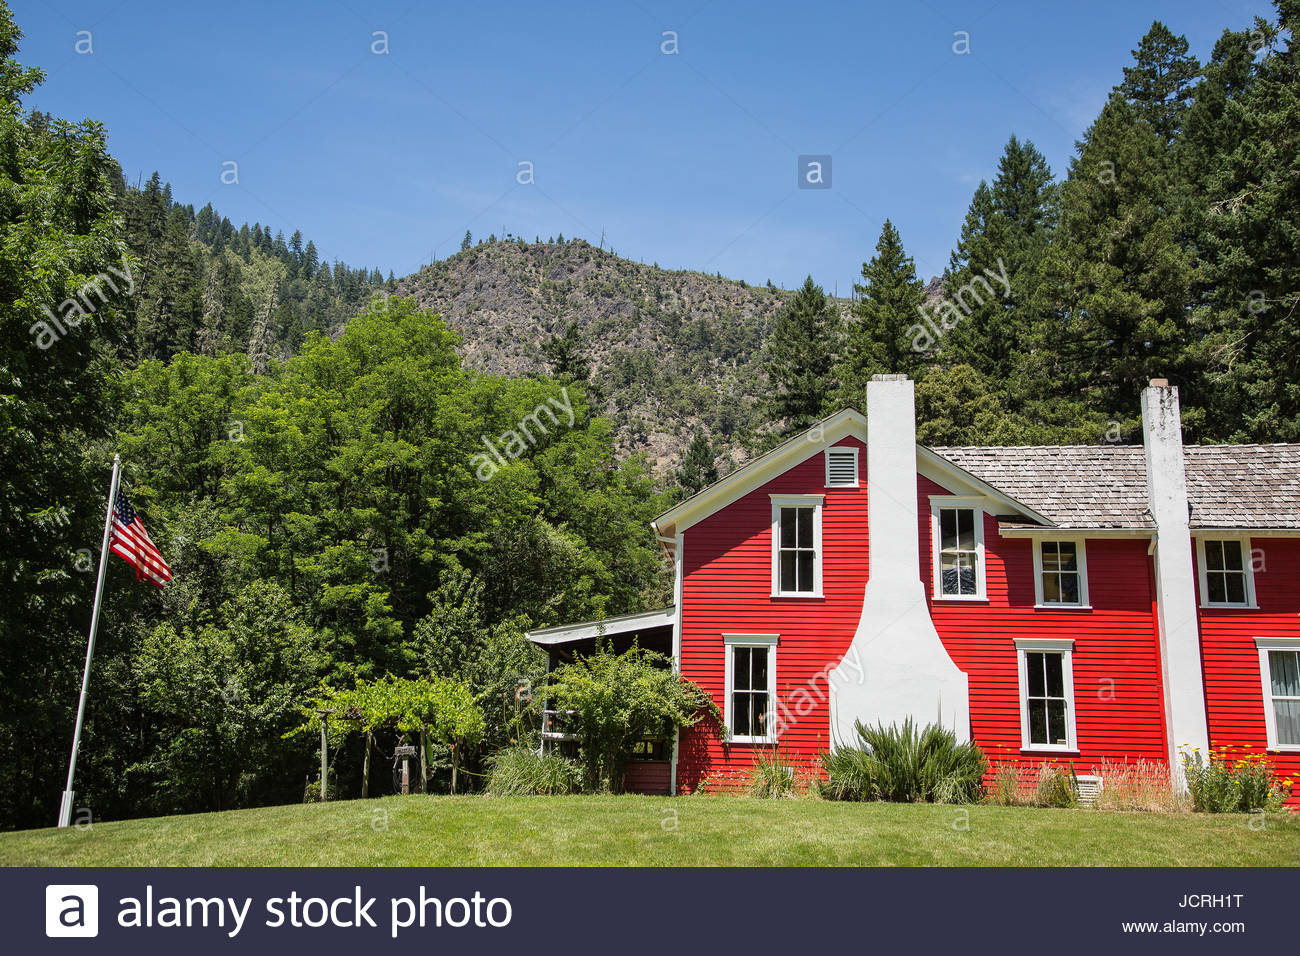 Exterior view of  the Rogue River Ranch, a U.S. National Register of Historic Places location in Curry County Oregon. Stock Photo